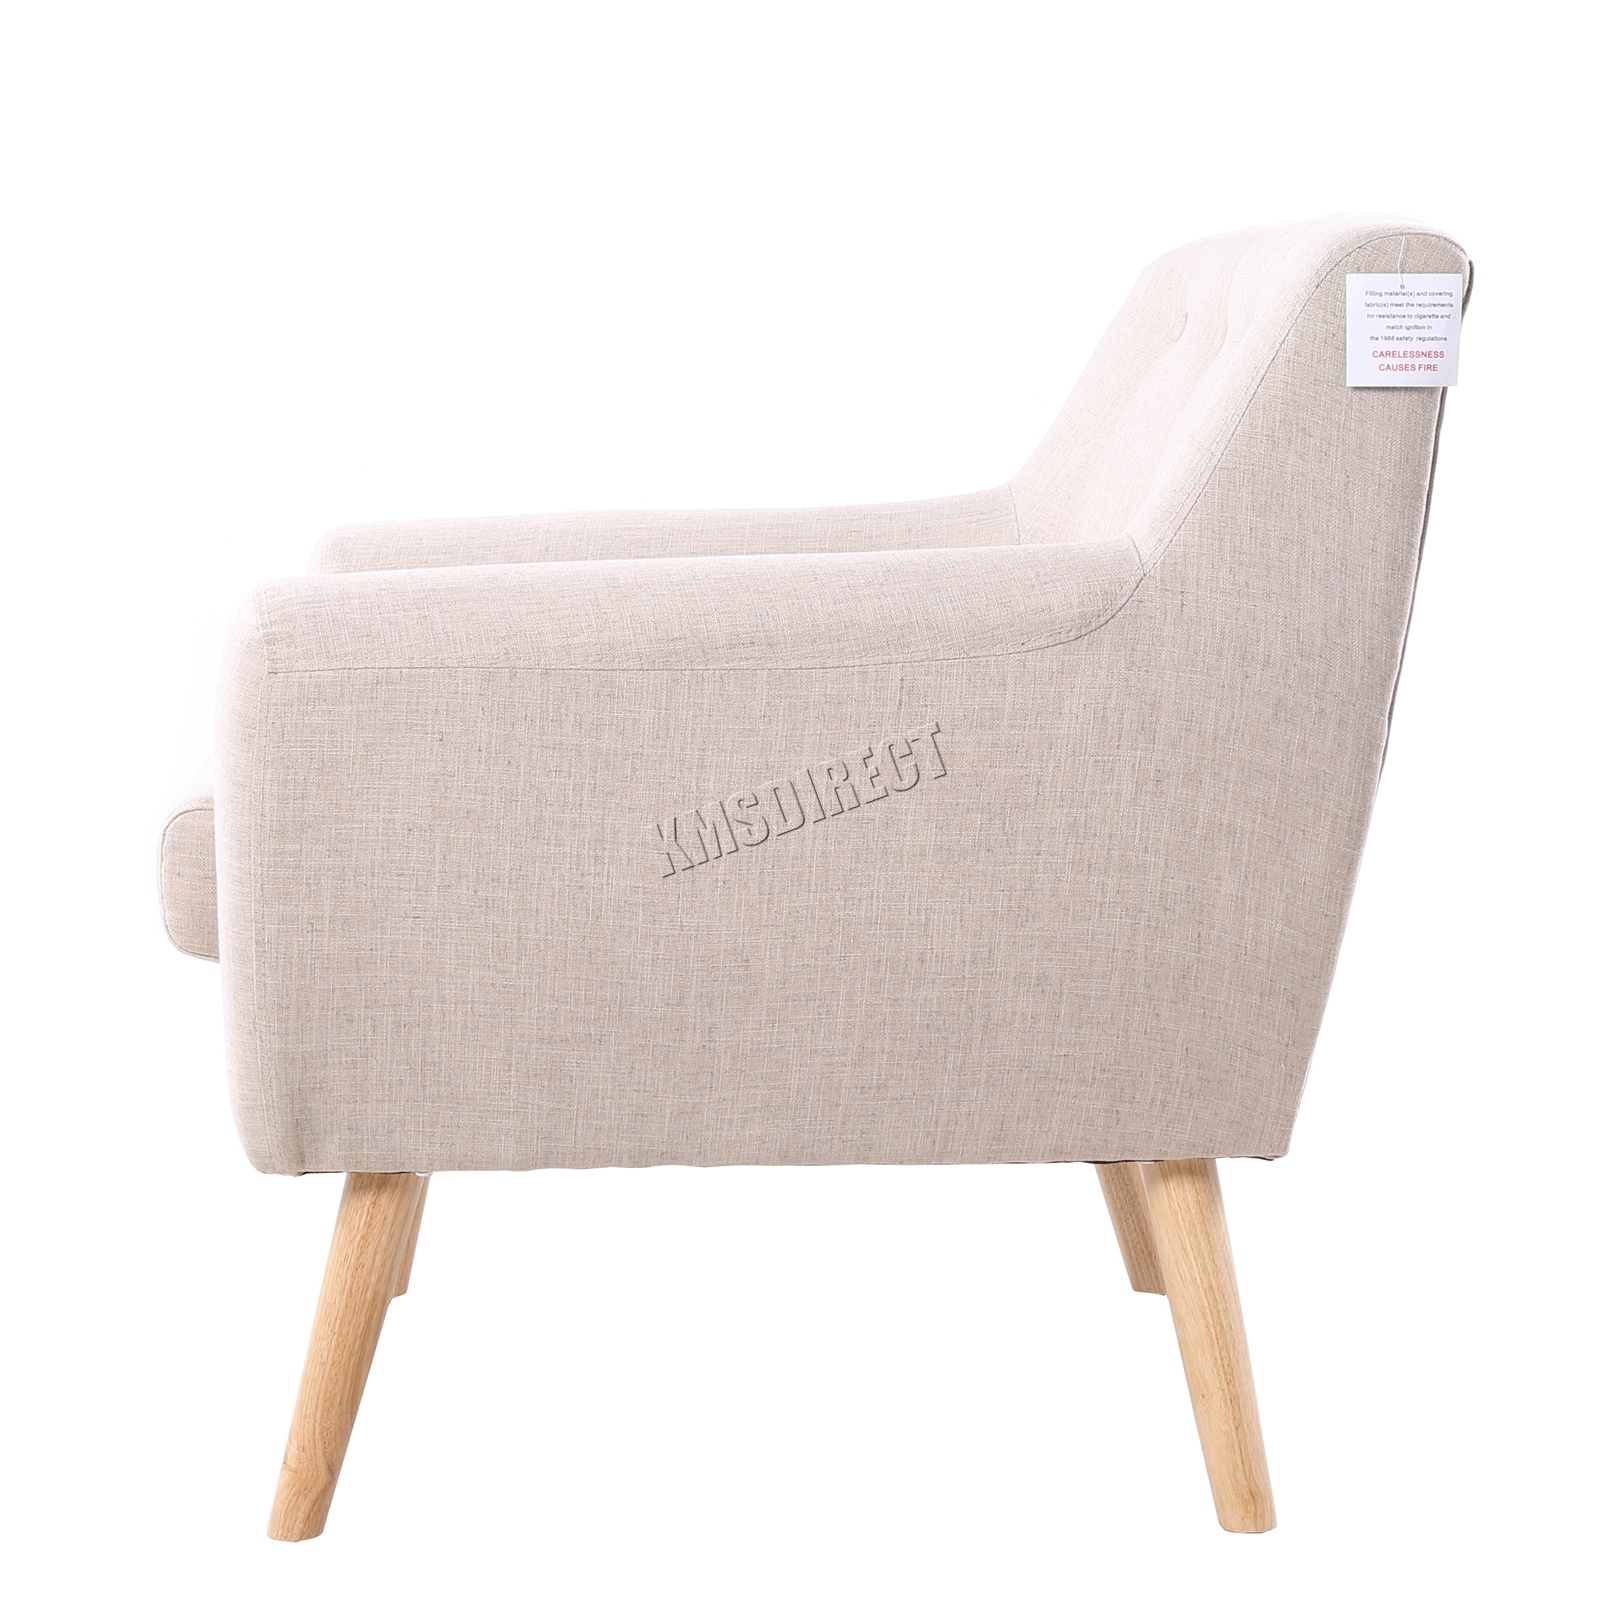 Sentinel FoxHunter Linen Fabric 1 Single Seat Sofa Tub Arm Chair Dining Room SSSF 03 New